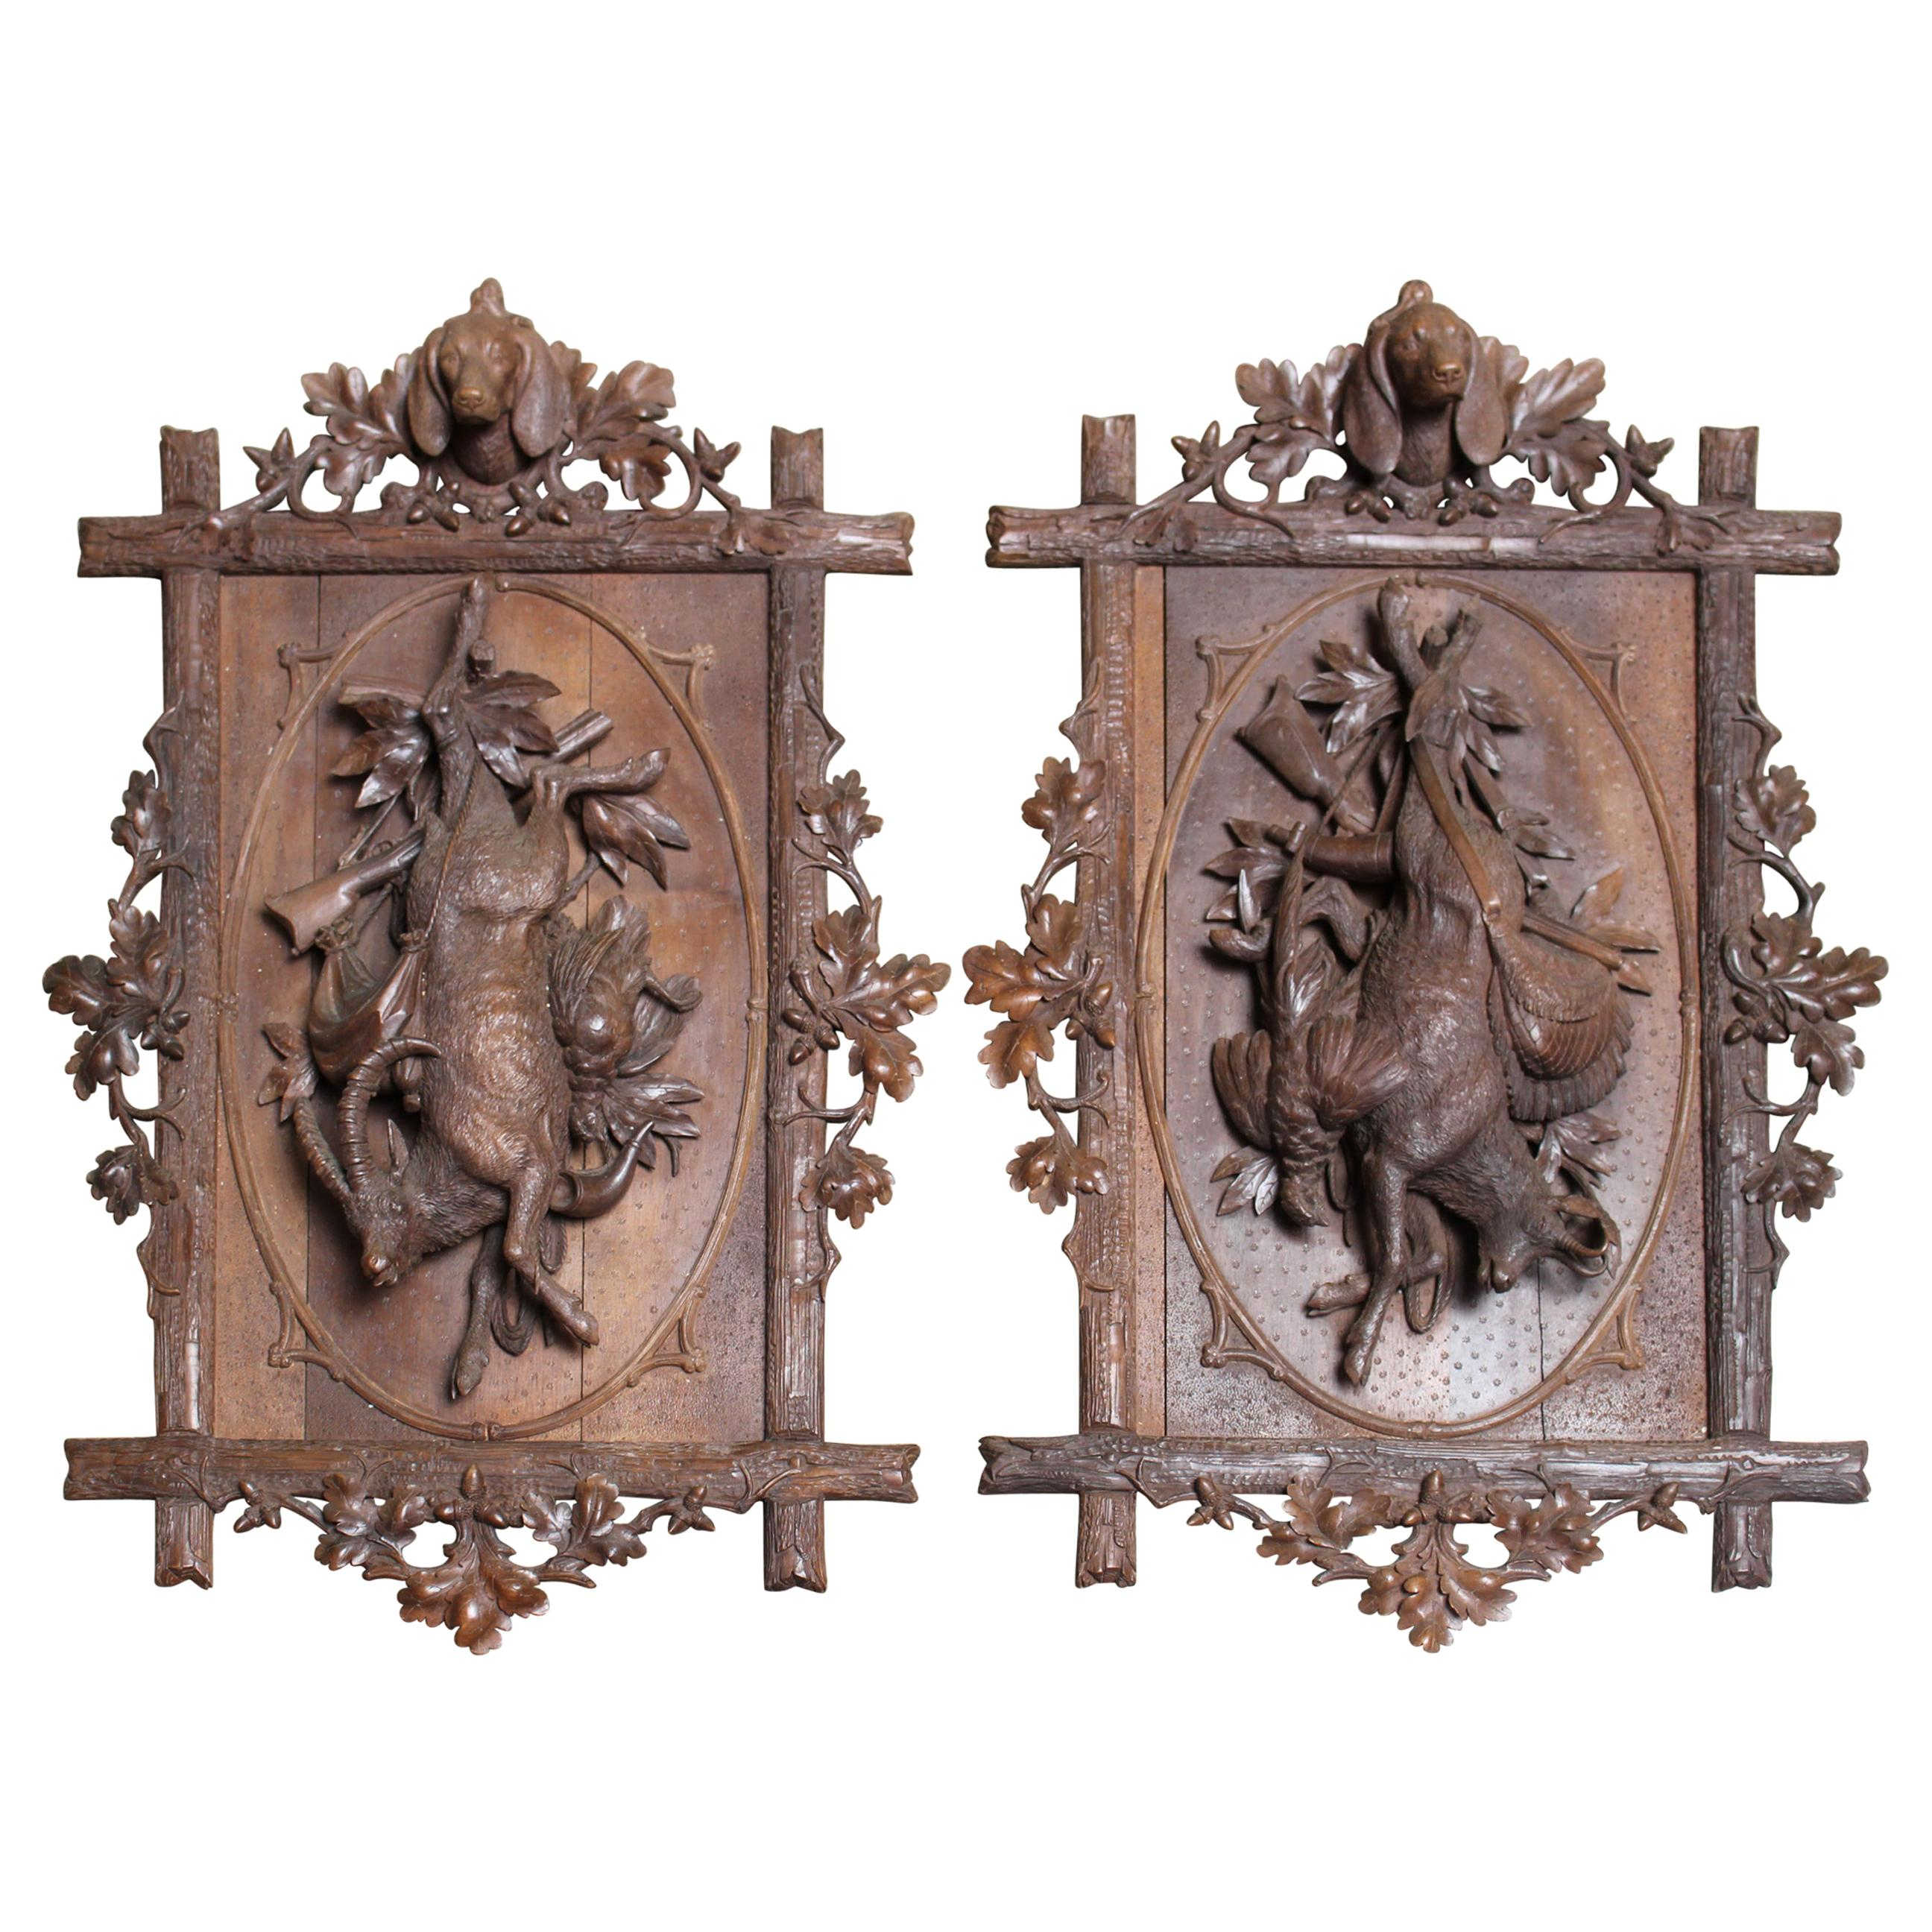 19th Century Pair of Carved Wood Panels with a Hunting Motif